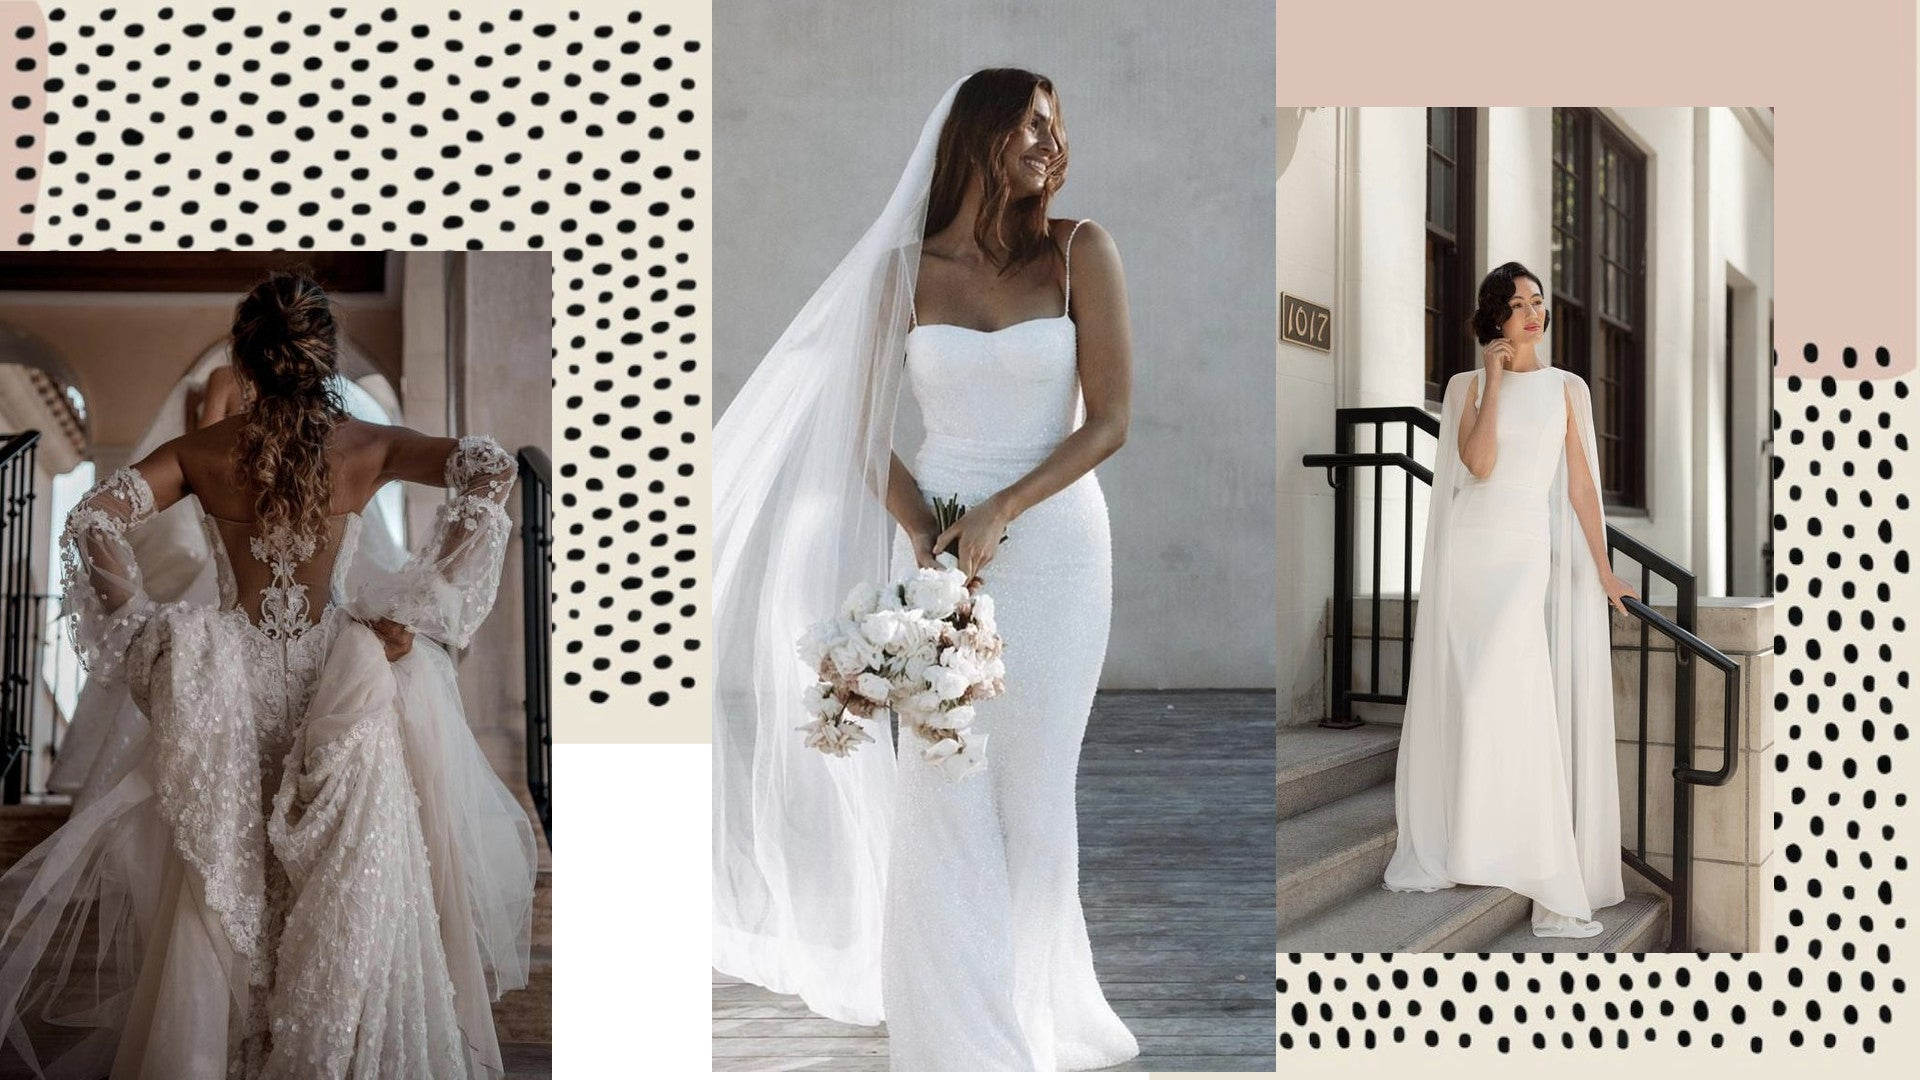 Consign wedding dresses with Vancouver based bridal consignment company La Laurel